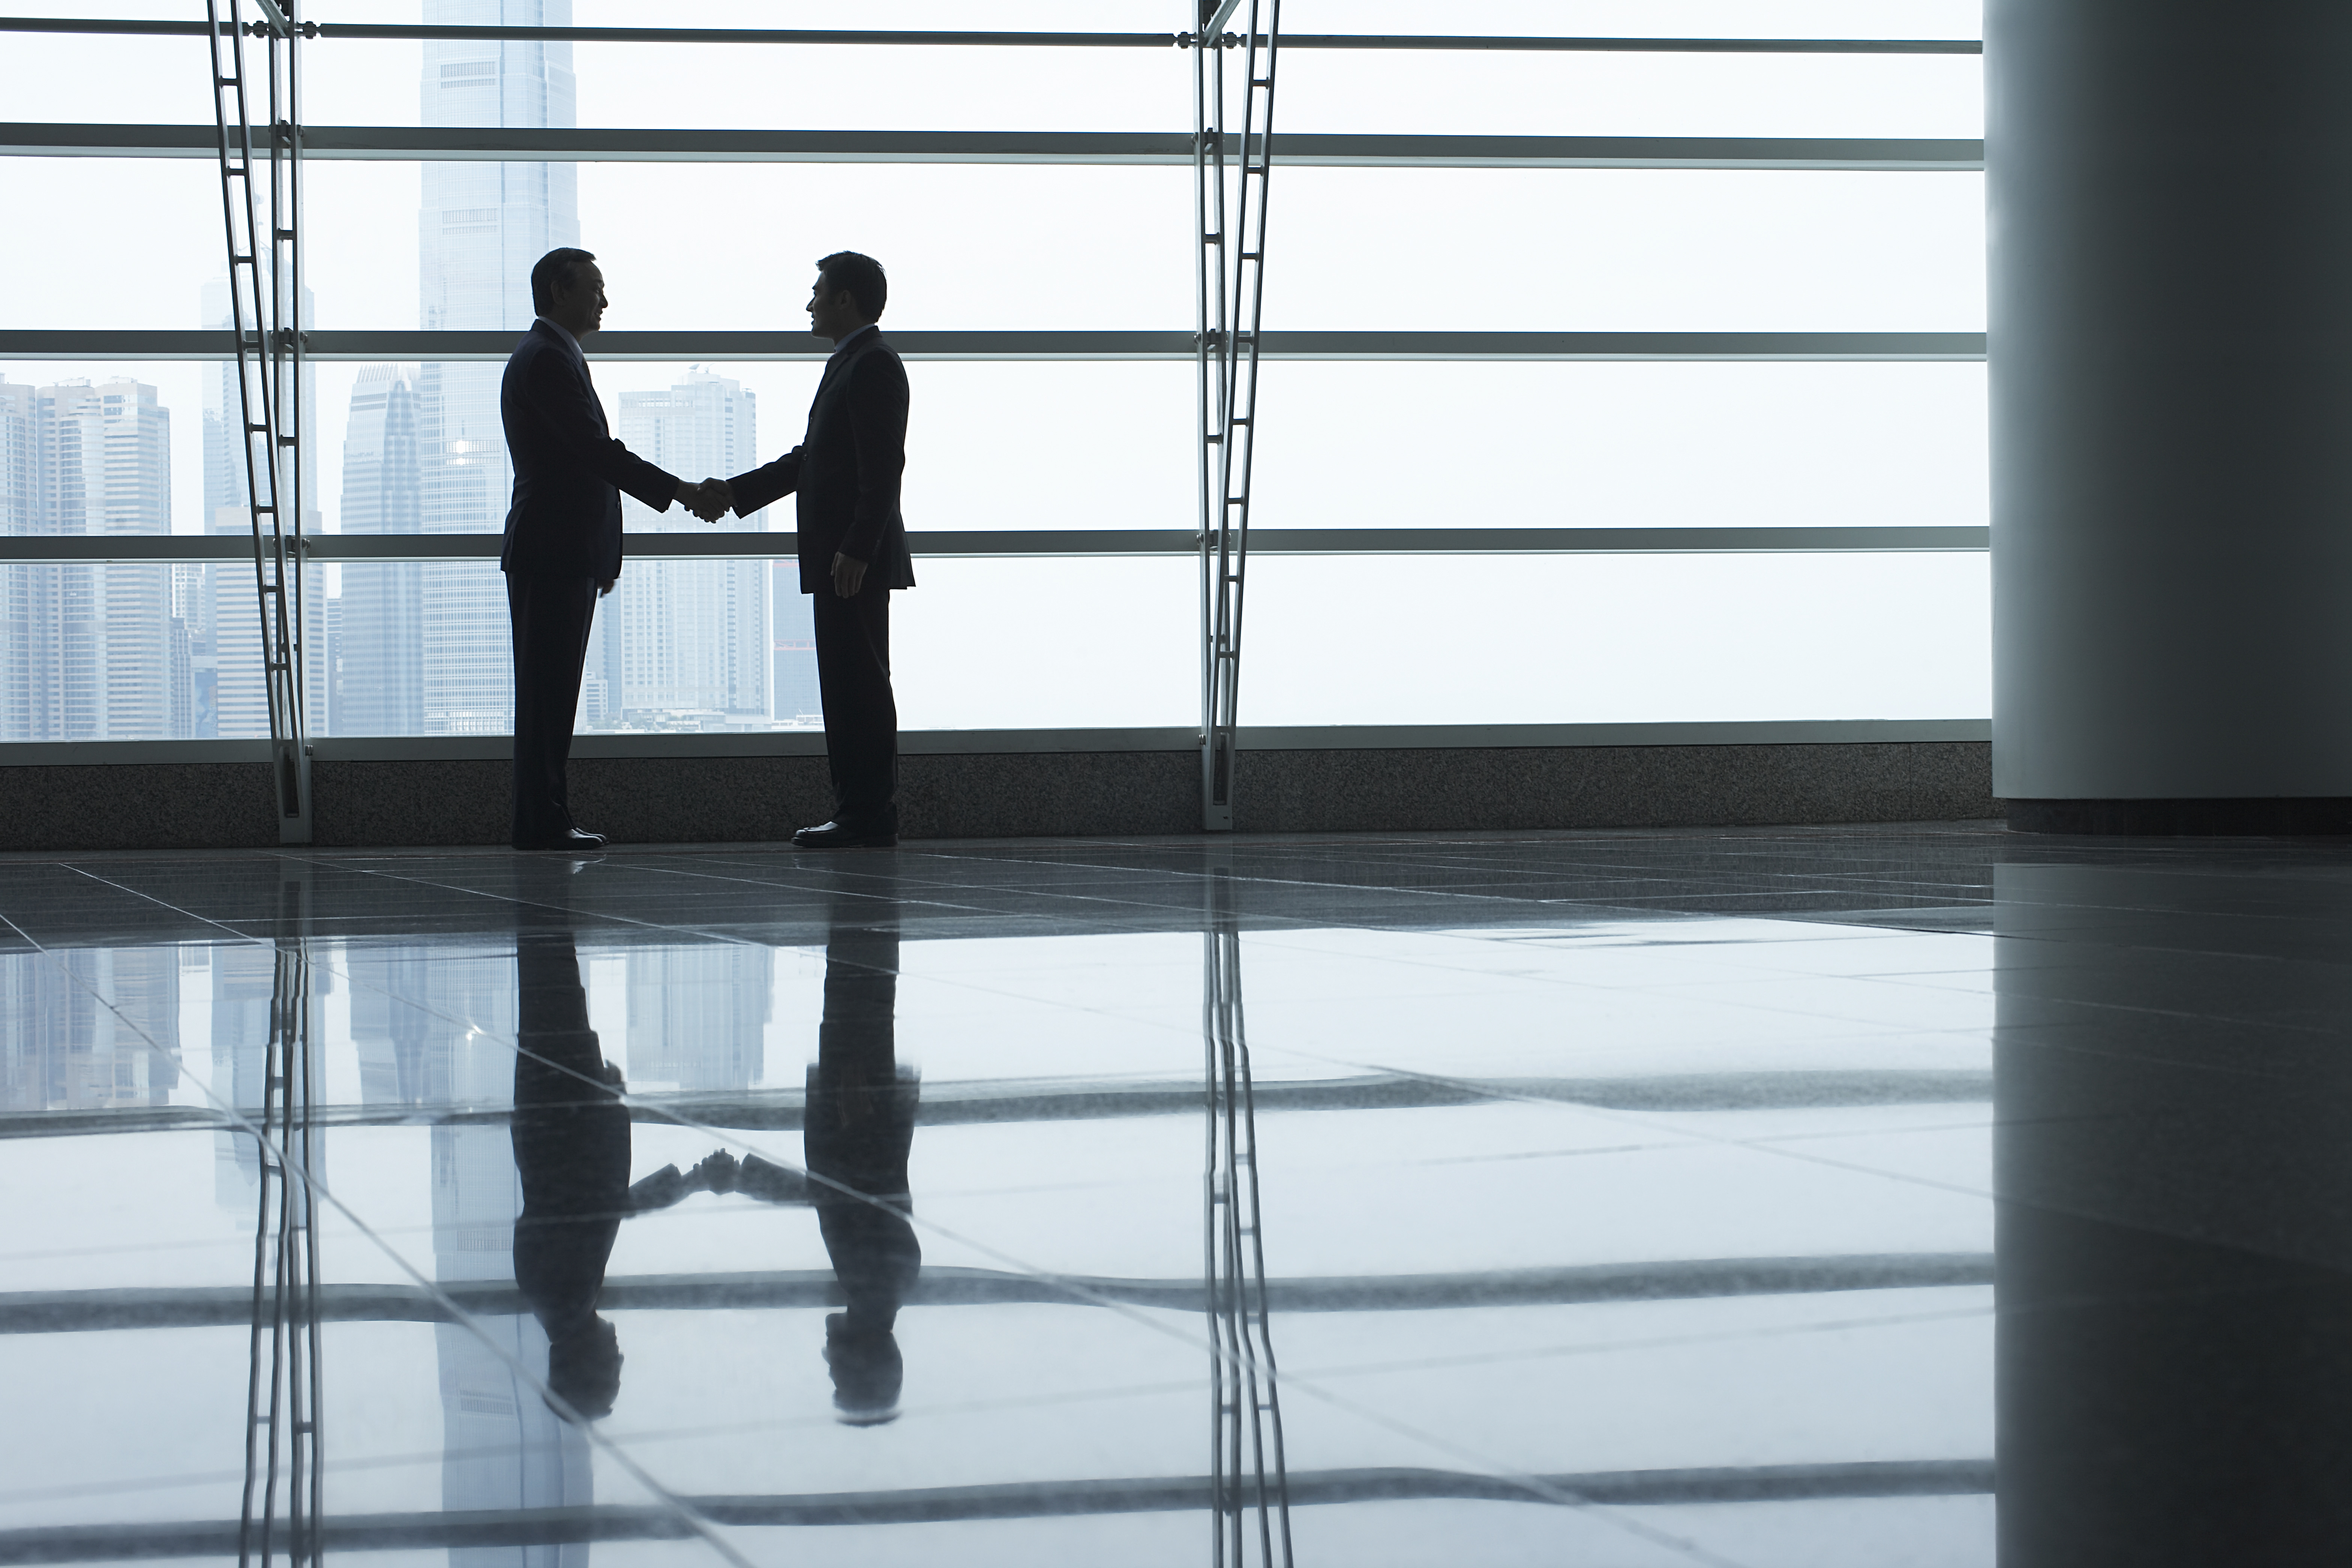 Two men shaking hands in lobby of building